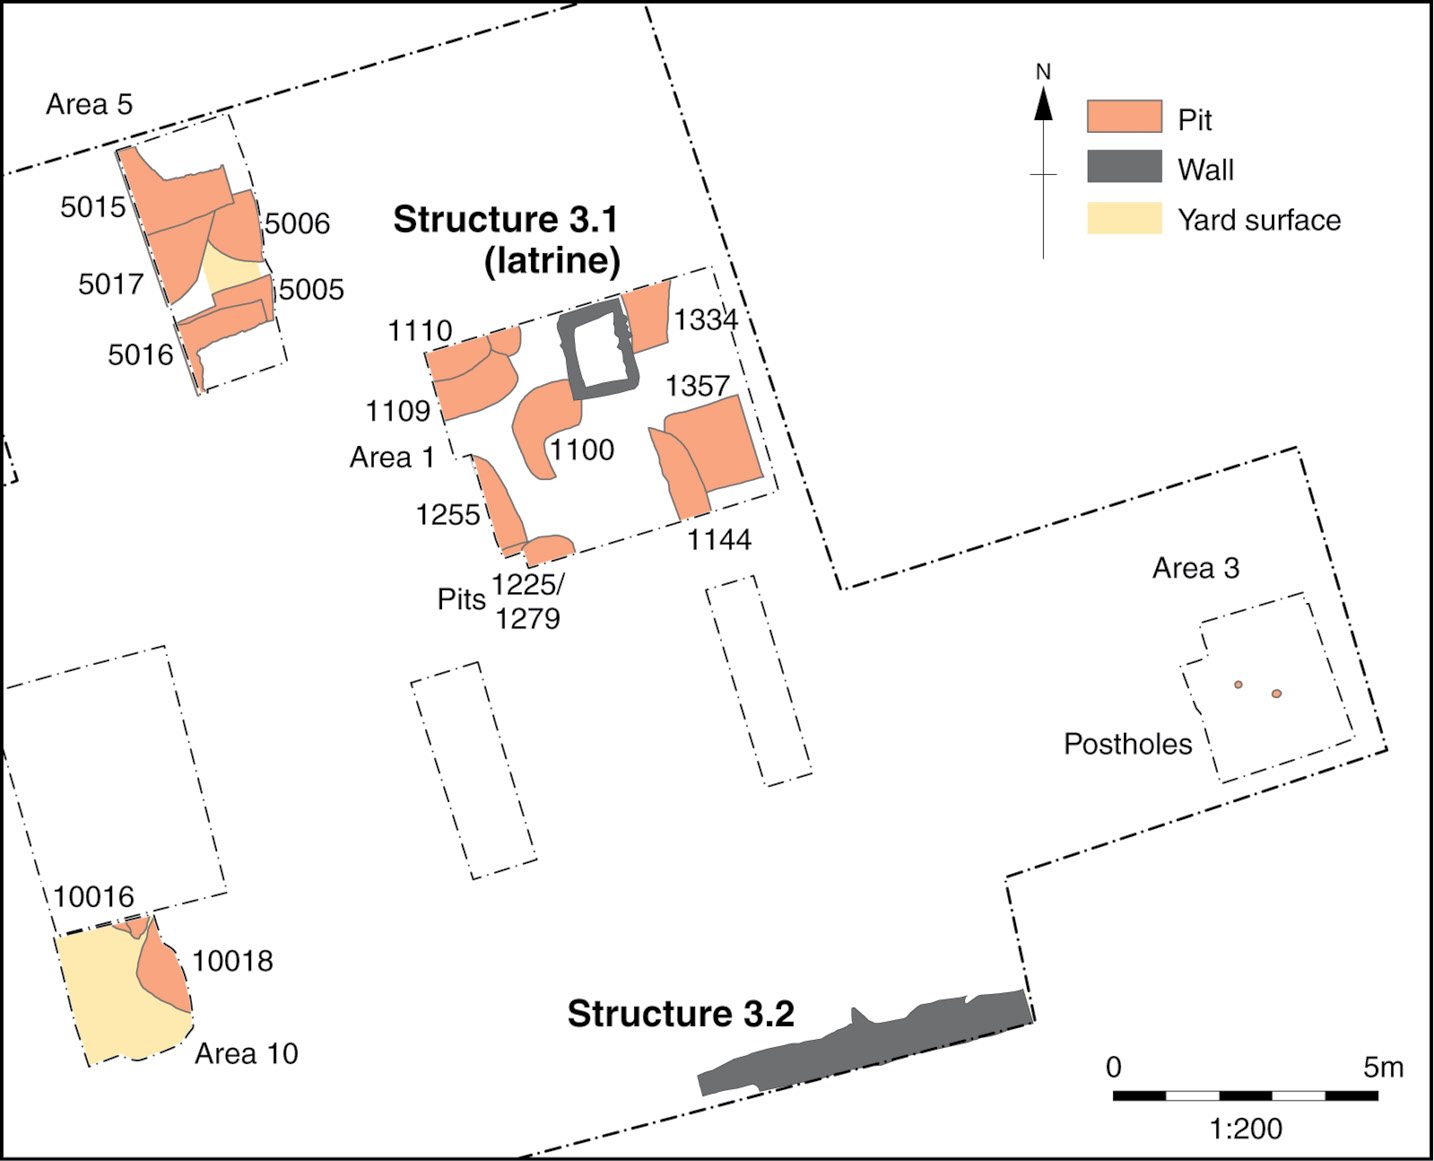 below This plan shows the late-11th-/ 12th-century features discovered on the site. Might they relate to the period of Jewish settlement in this area?